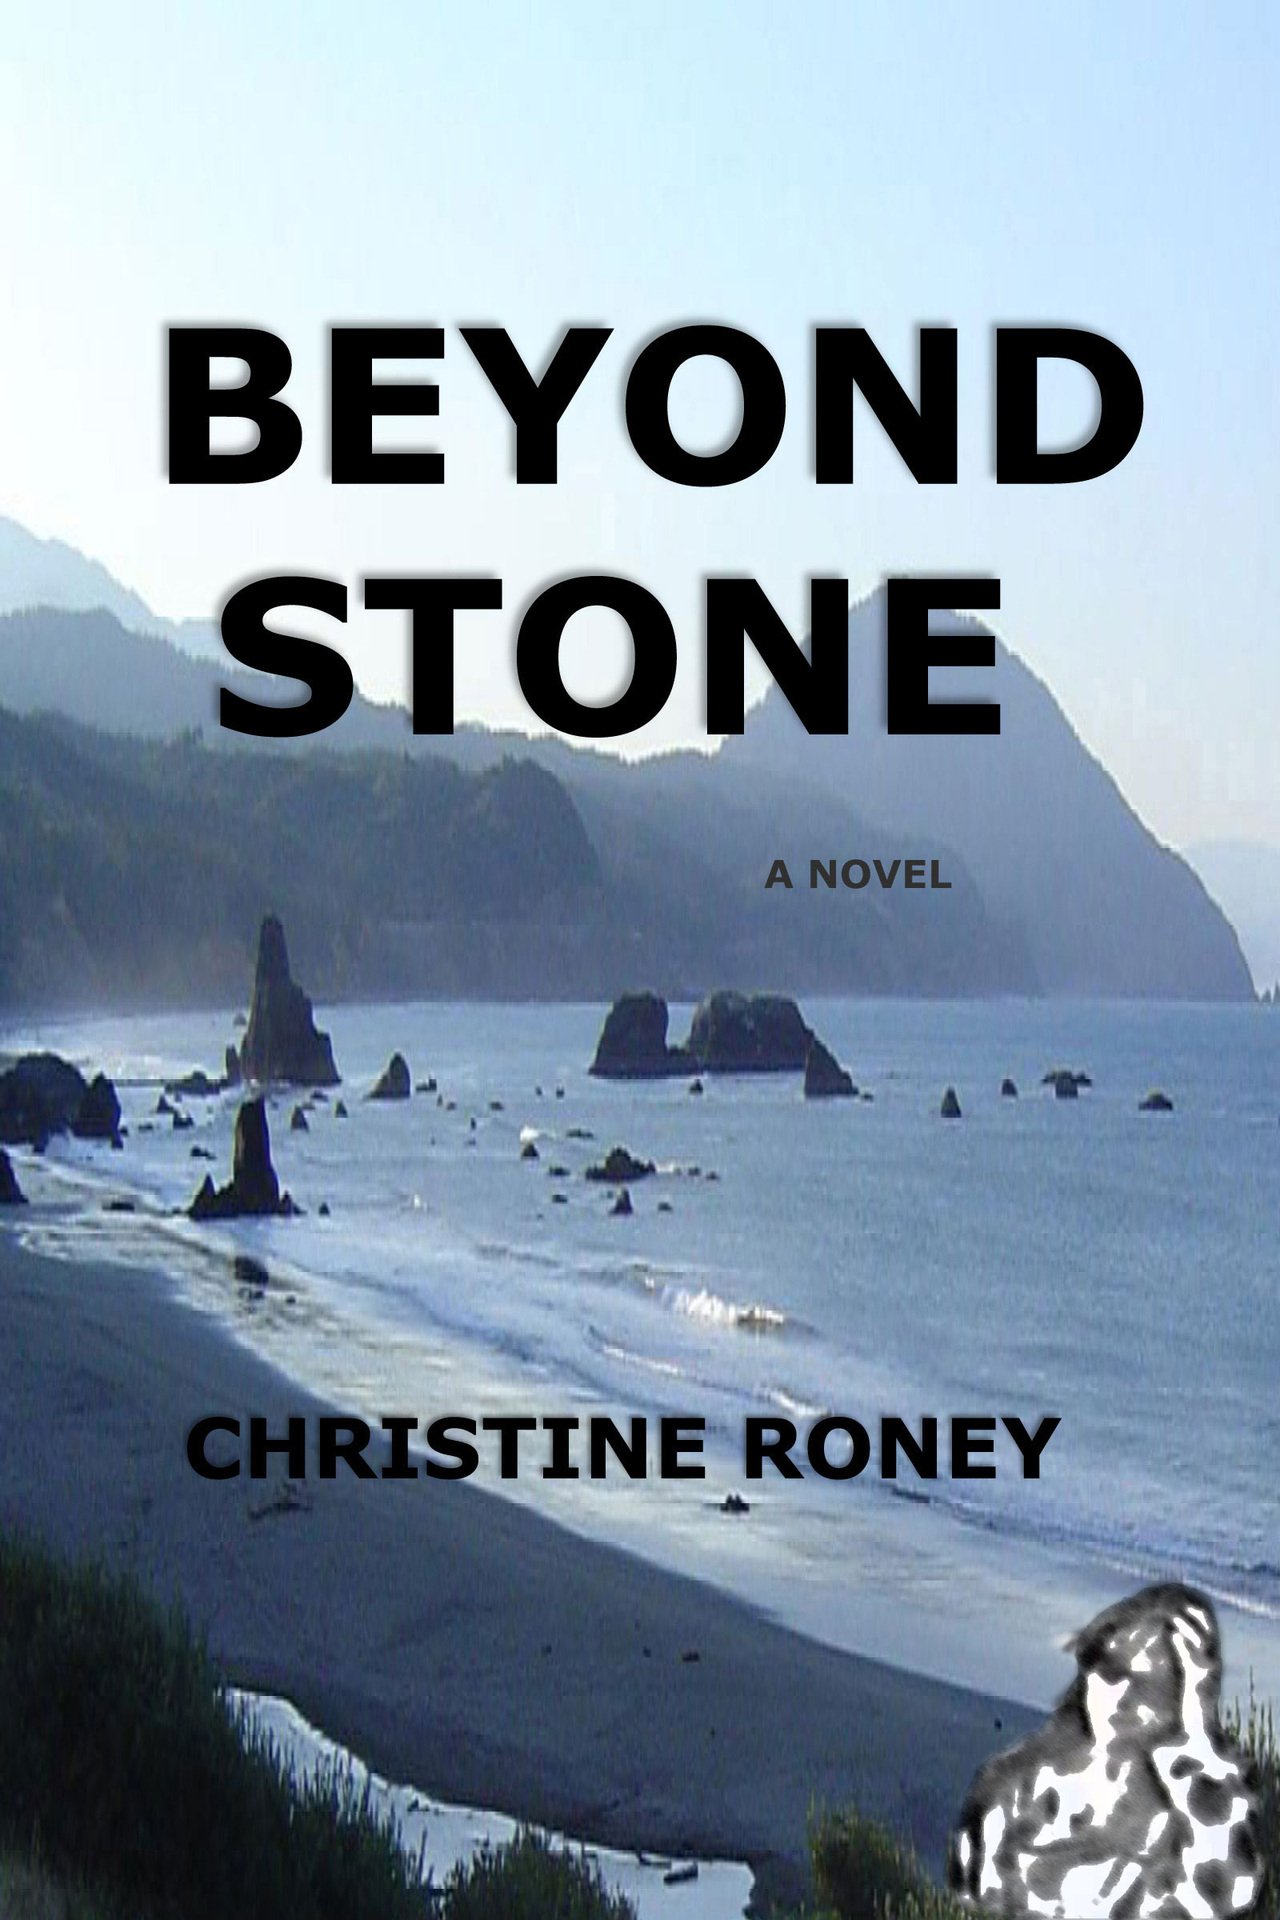 Beyond stone kindle cover